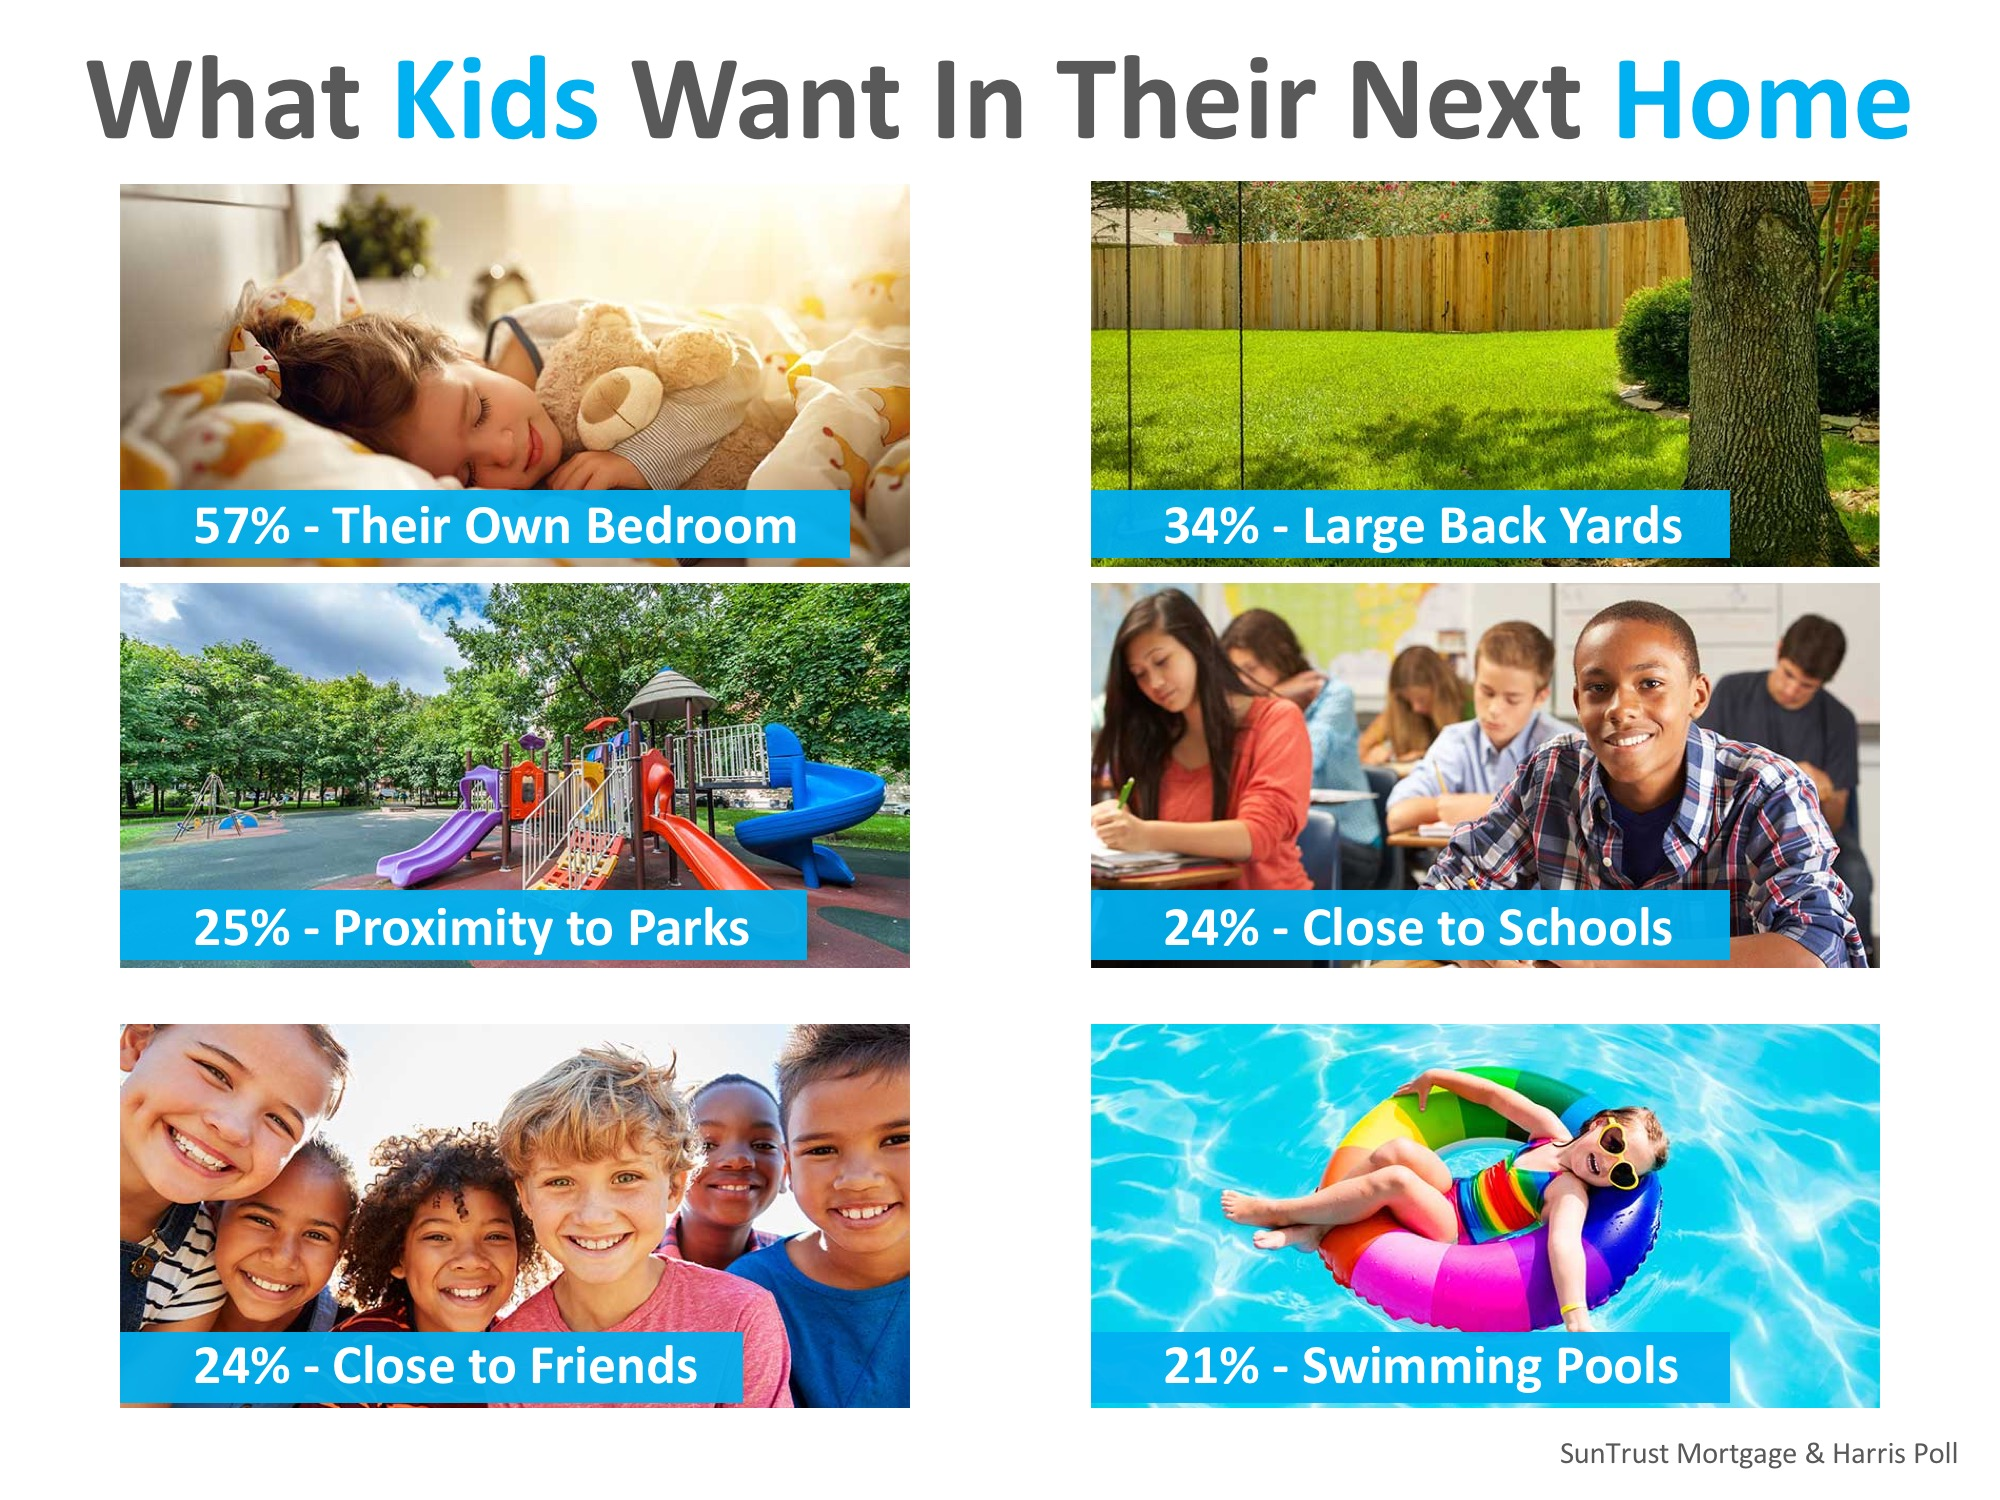 What Kids Want in Their Next Home